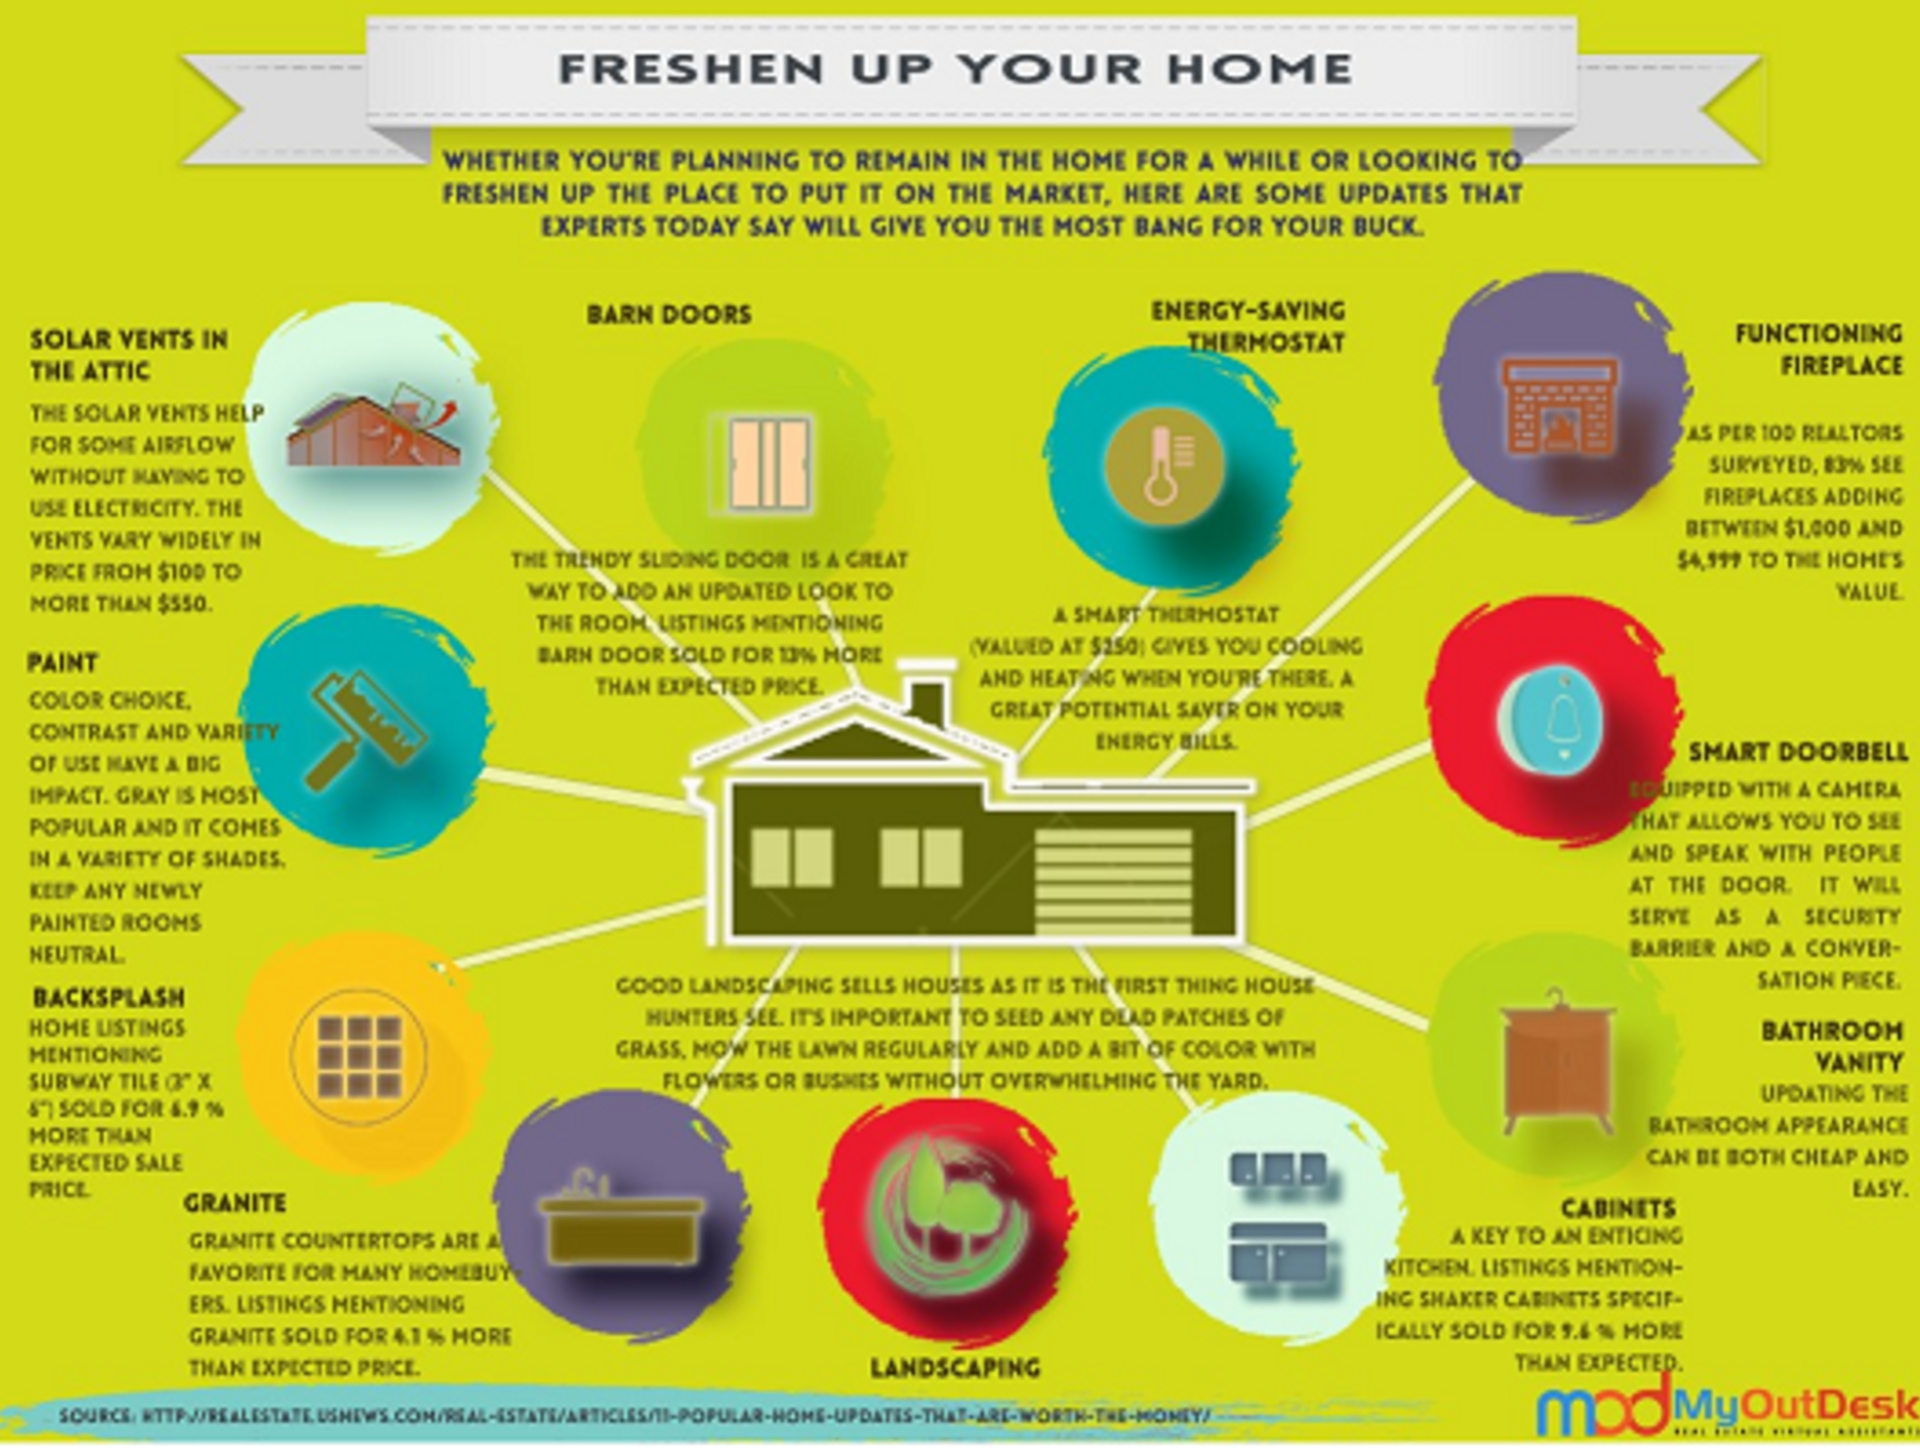 Tips to Freshen your Home